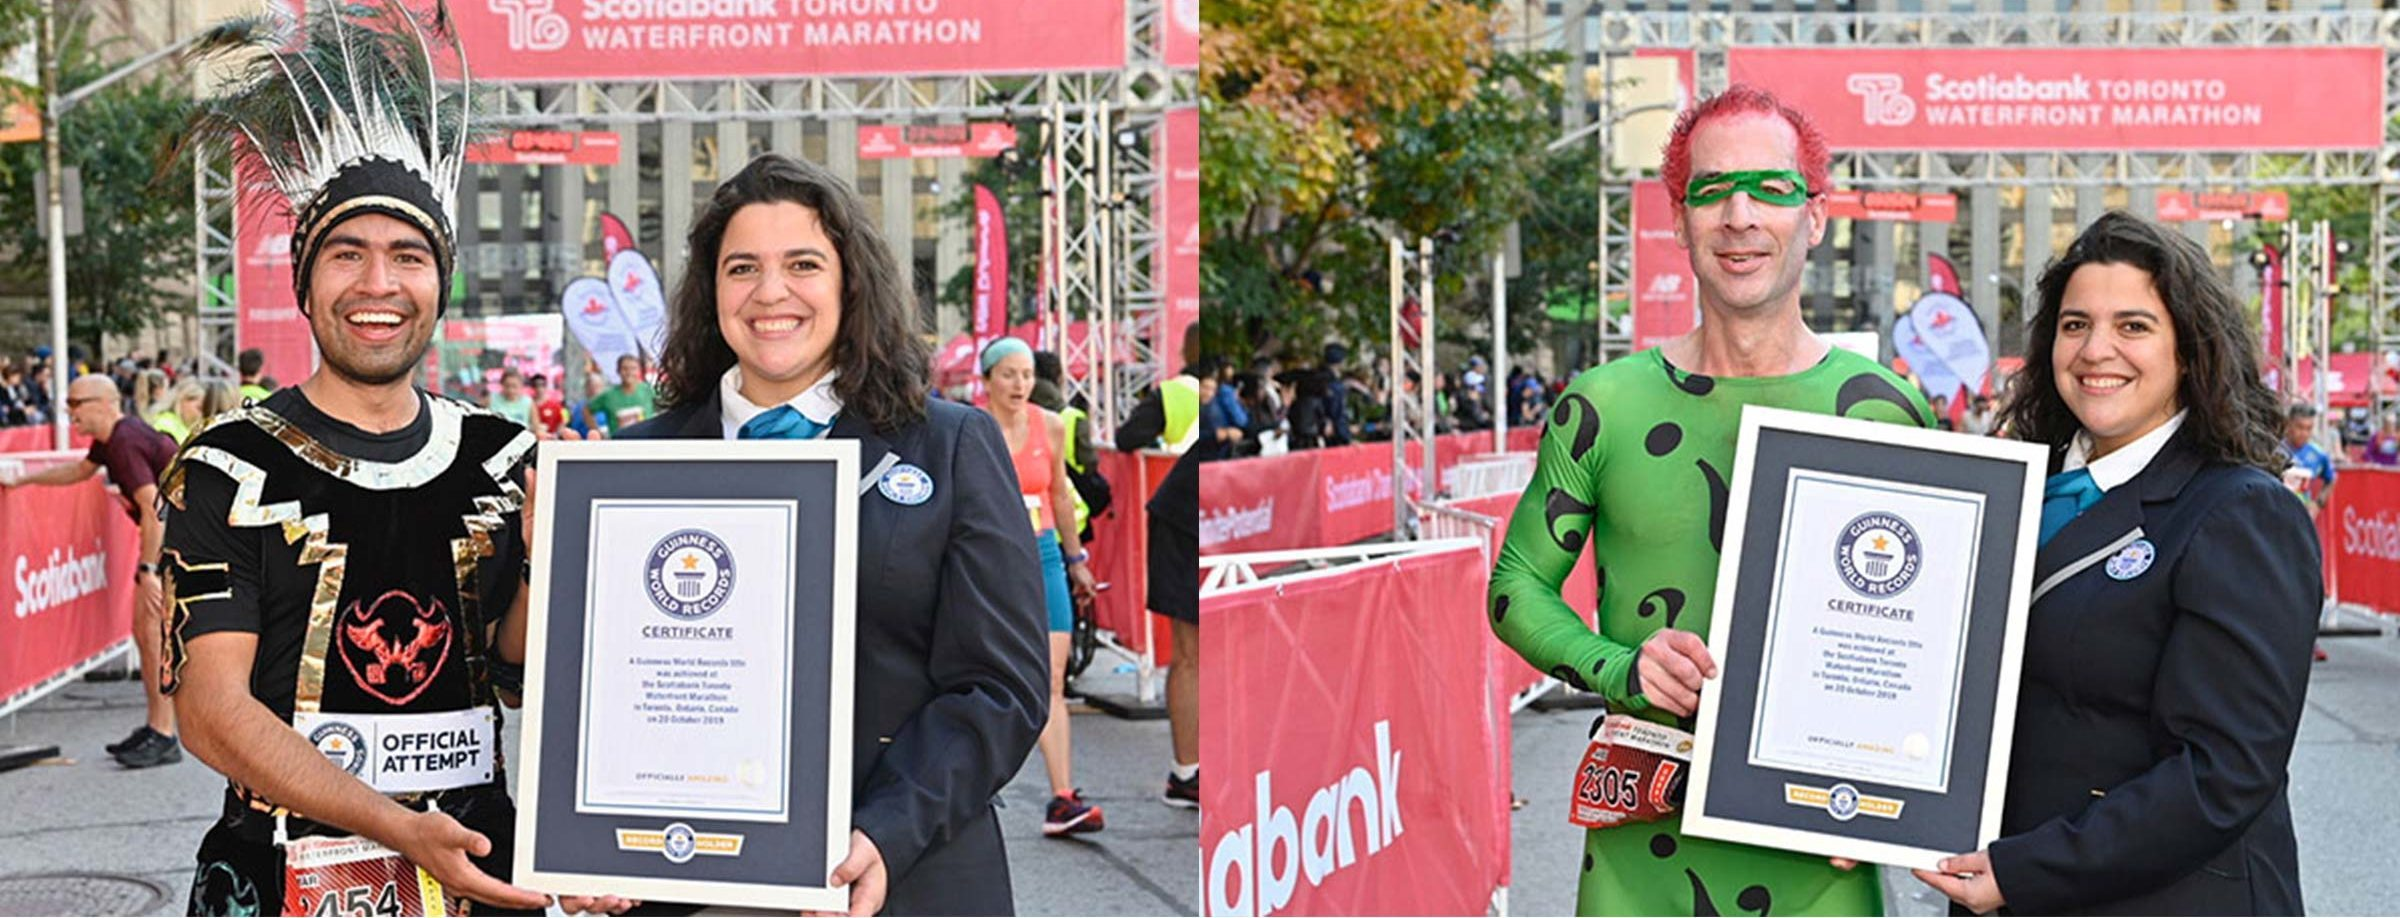 toronto marathon world record